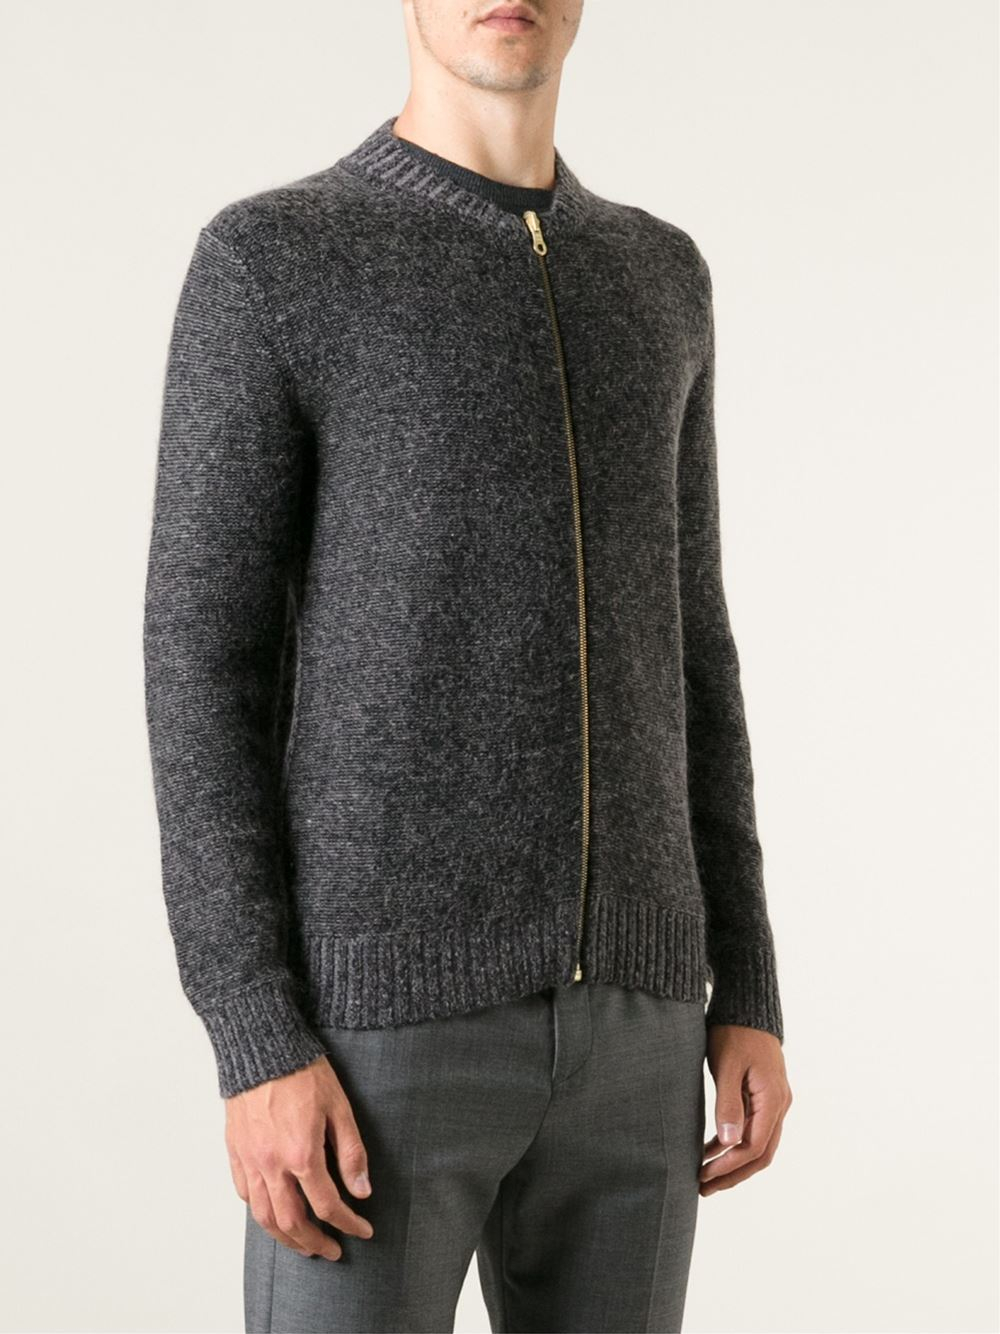 Ps by paul smith Zip Cardigan in Gray for Men | Lyst